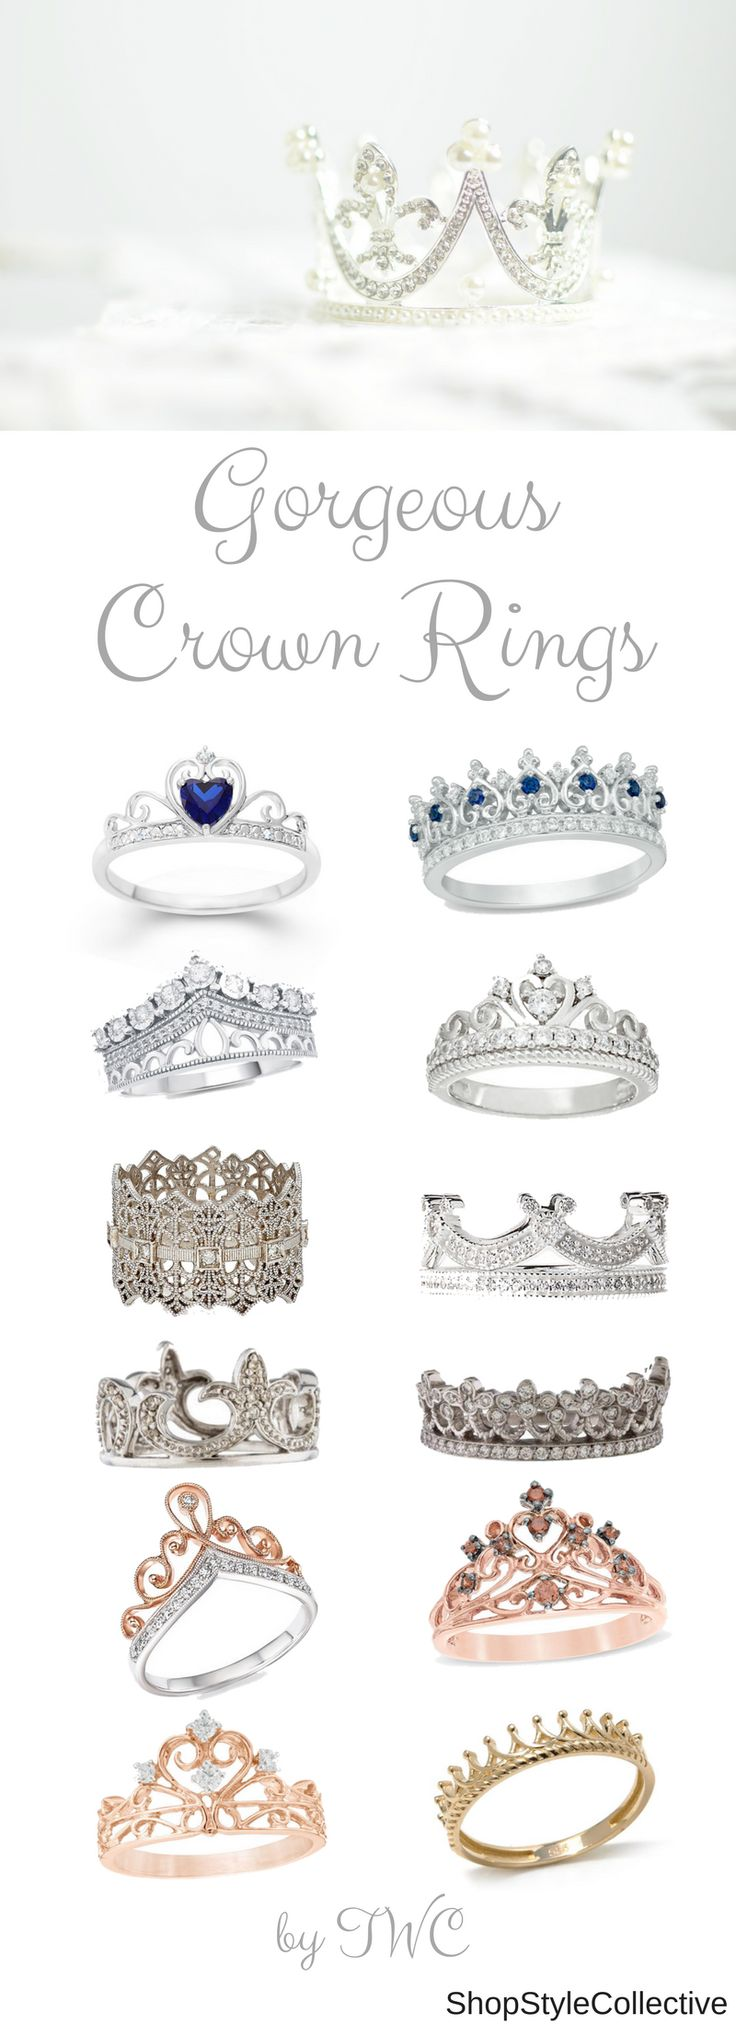 Crown rings have become quite popular on social media. There's is a sense of royalty to them. It has also become a trend to have a crown engagement ring or crown wedding ring. Check out this collection of stunning crown rings.